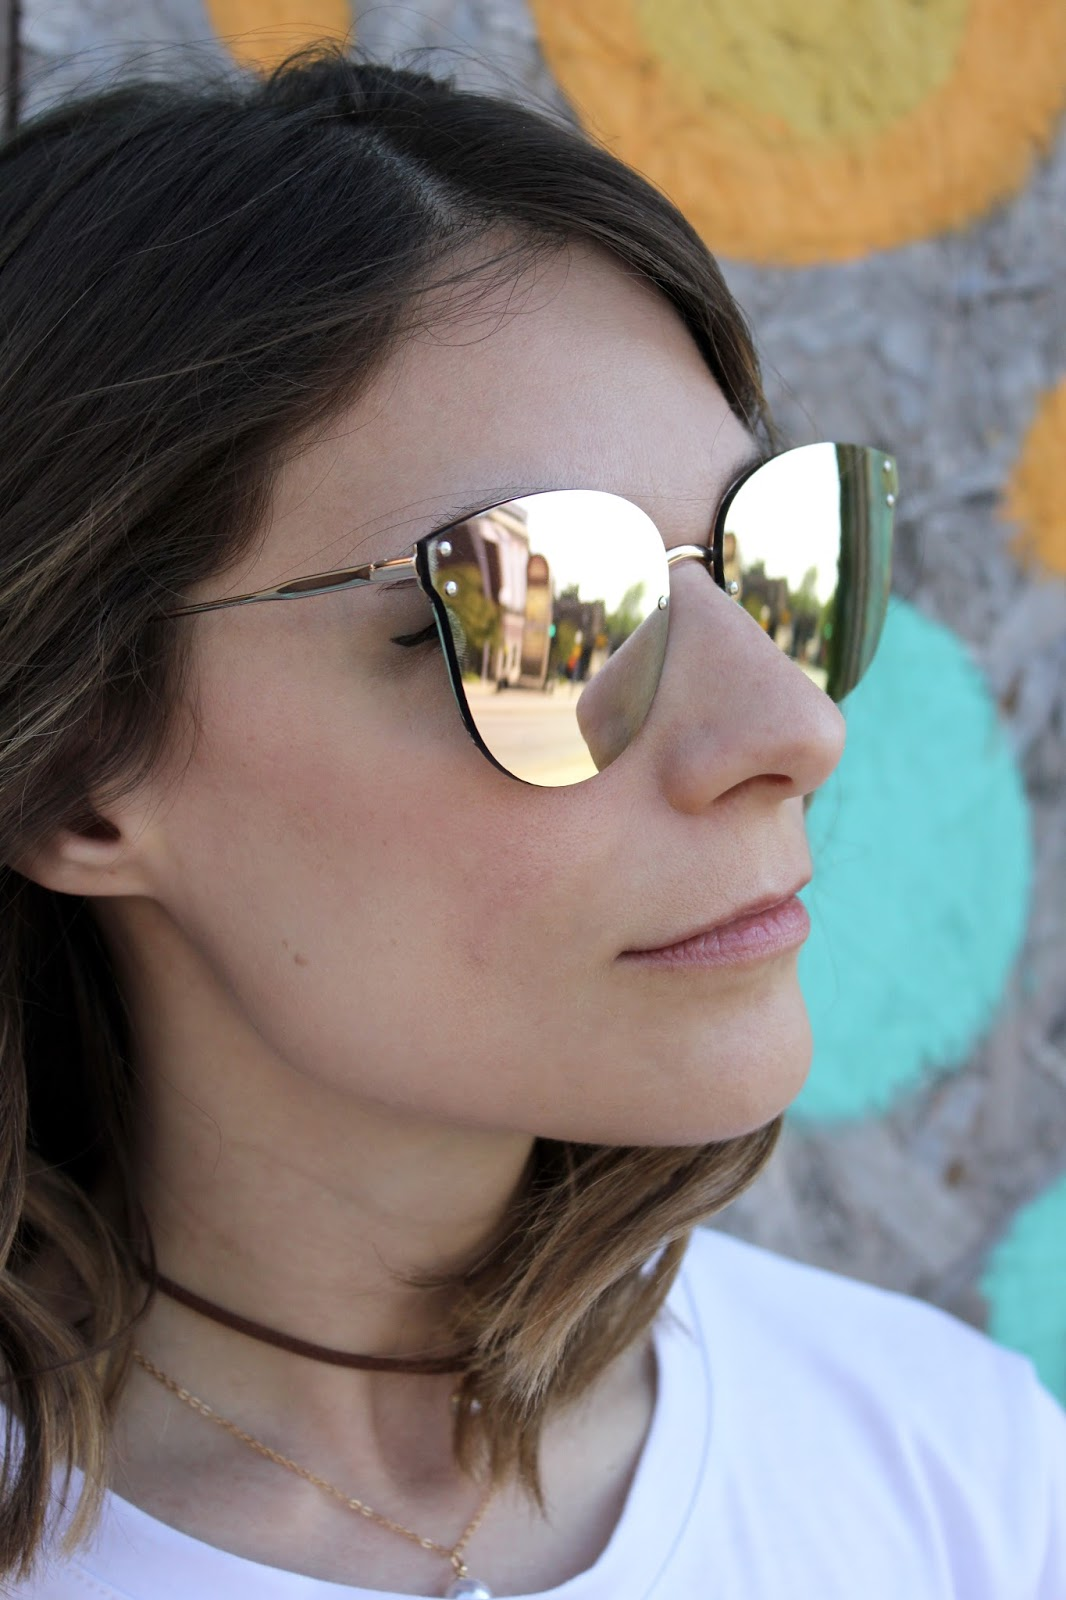 Zaful Pink Frameless Mirrored Sunglasses